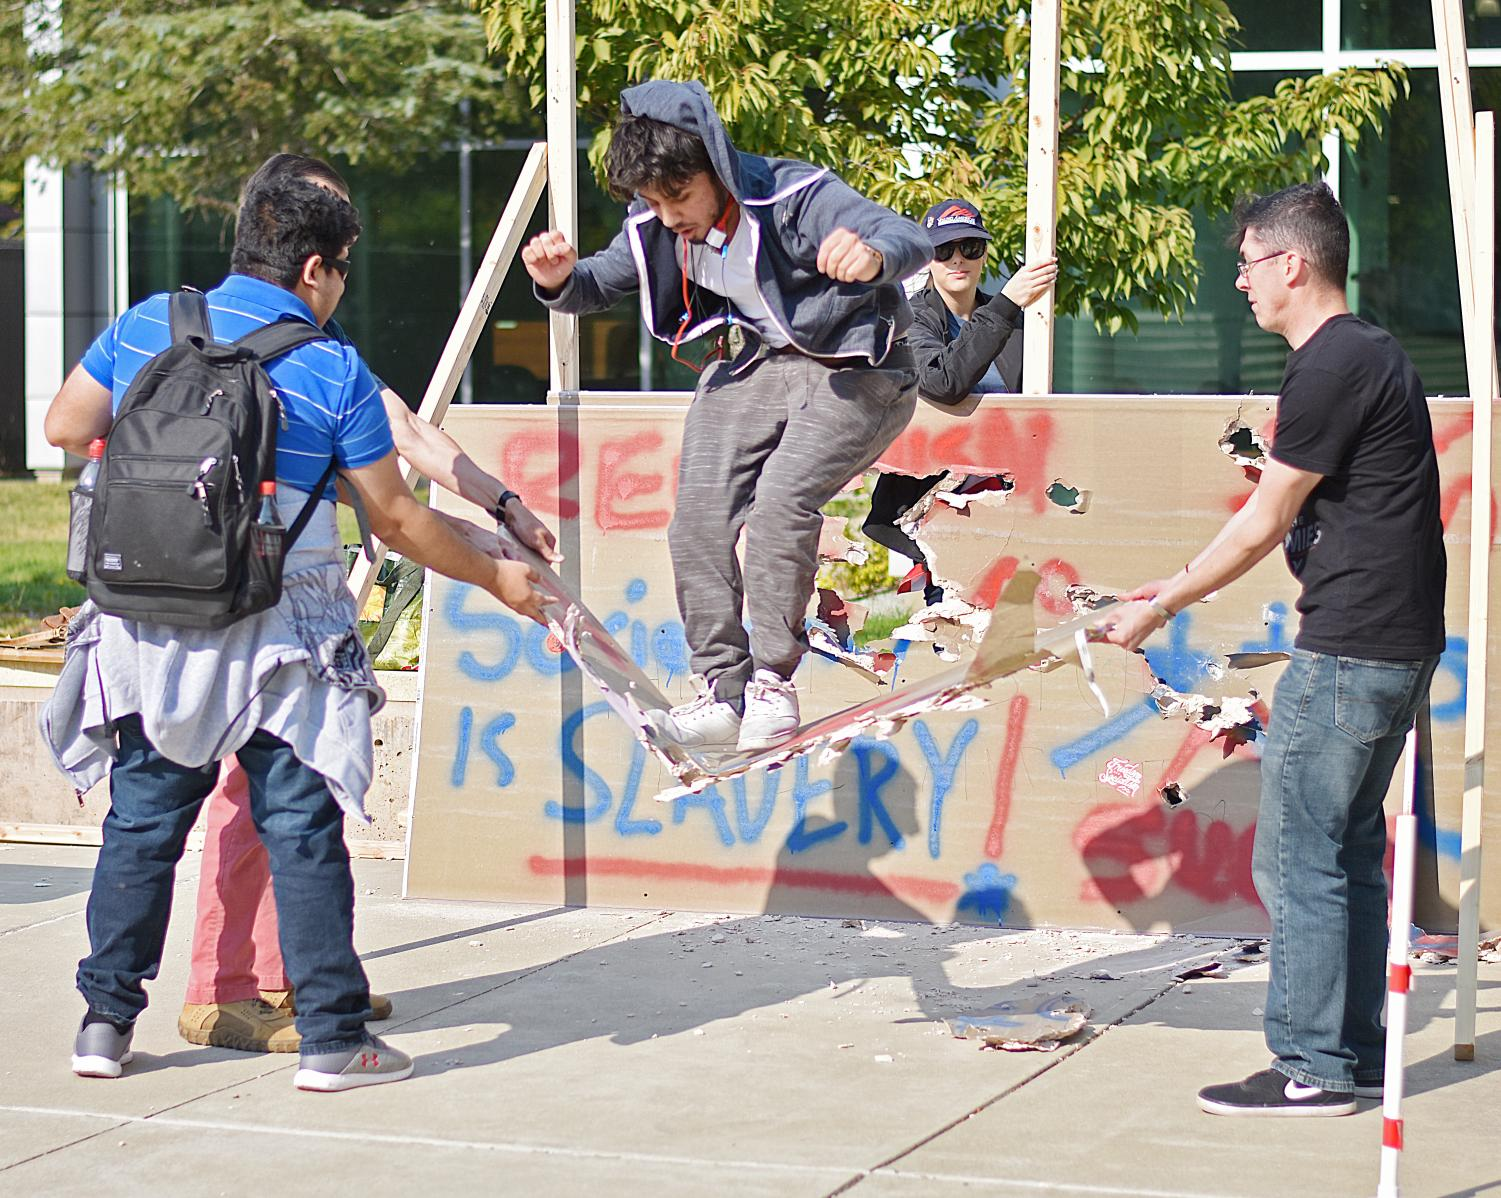 Aadil Faith smashes through a segment of Young American's for Freedom's 'Berlin Wall.'